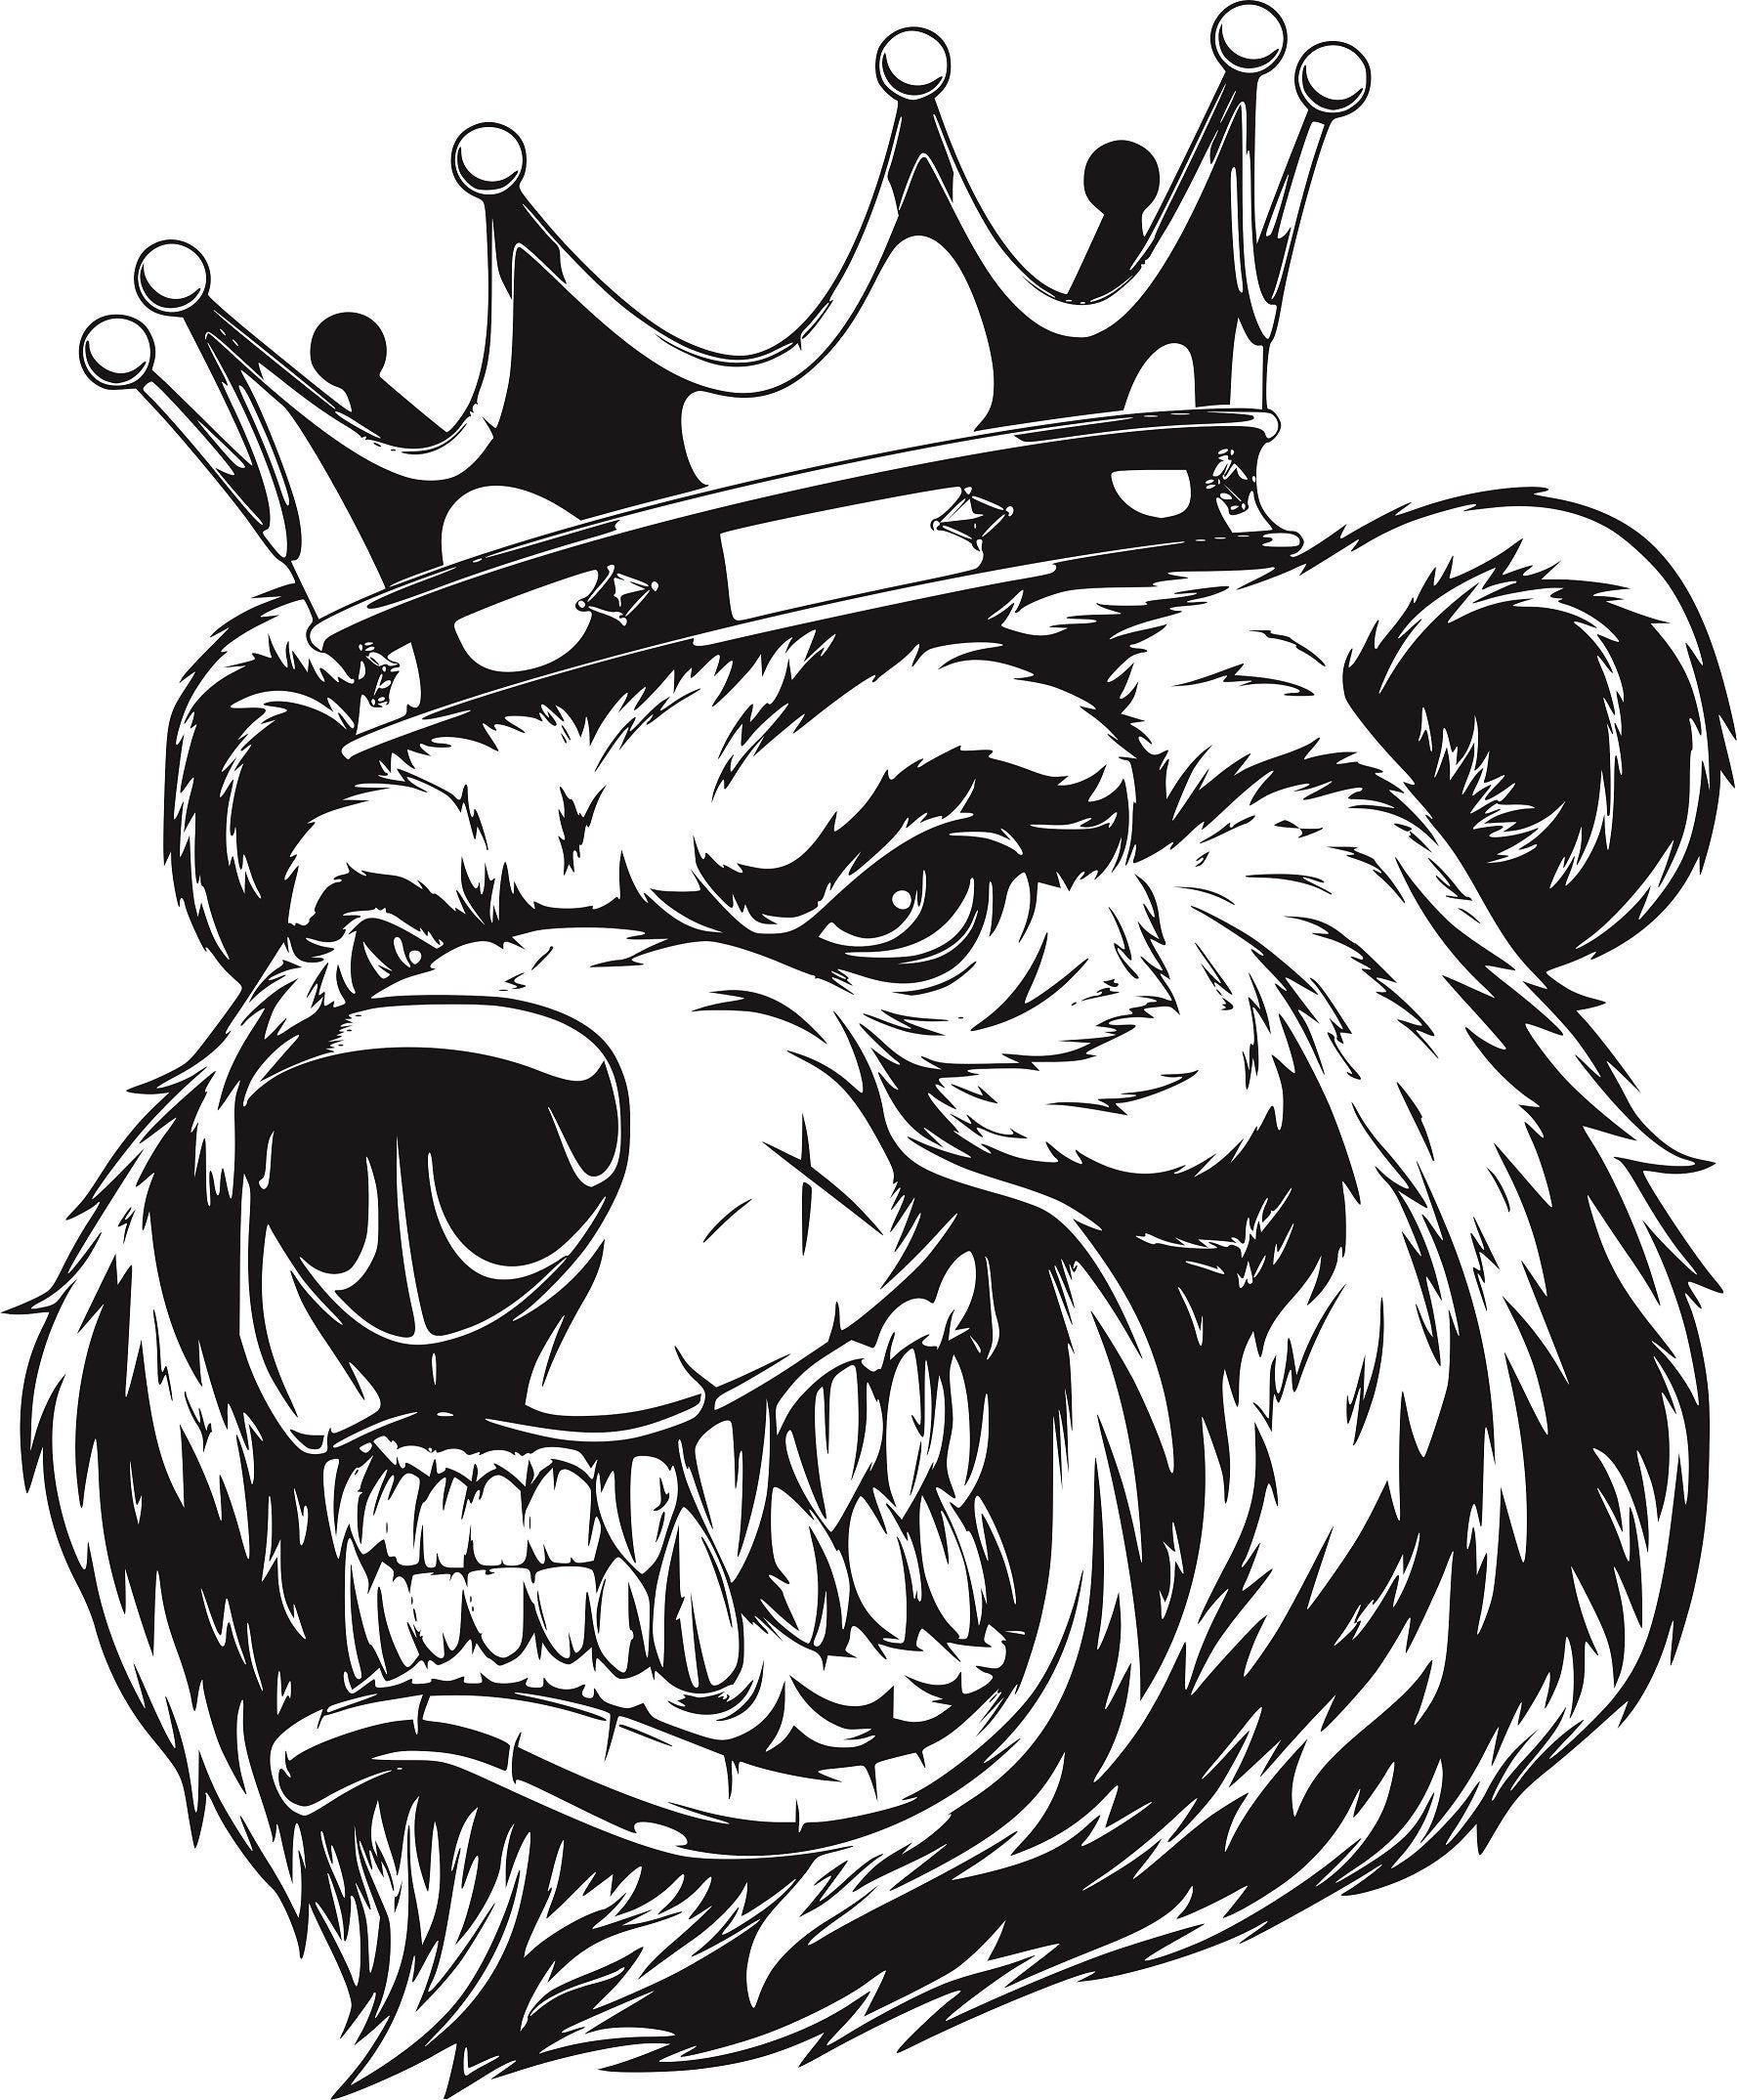 Angry Bear Clipart Vector Image Fierce Grizzly Bear Head Etsy Bear Tattoo Designs Grizzly Bear Tattoos Angry Bear